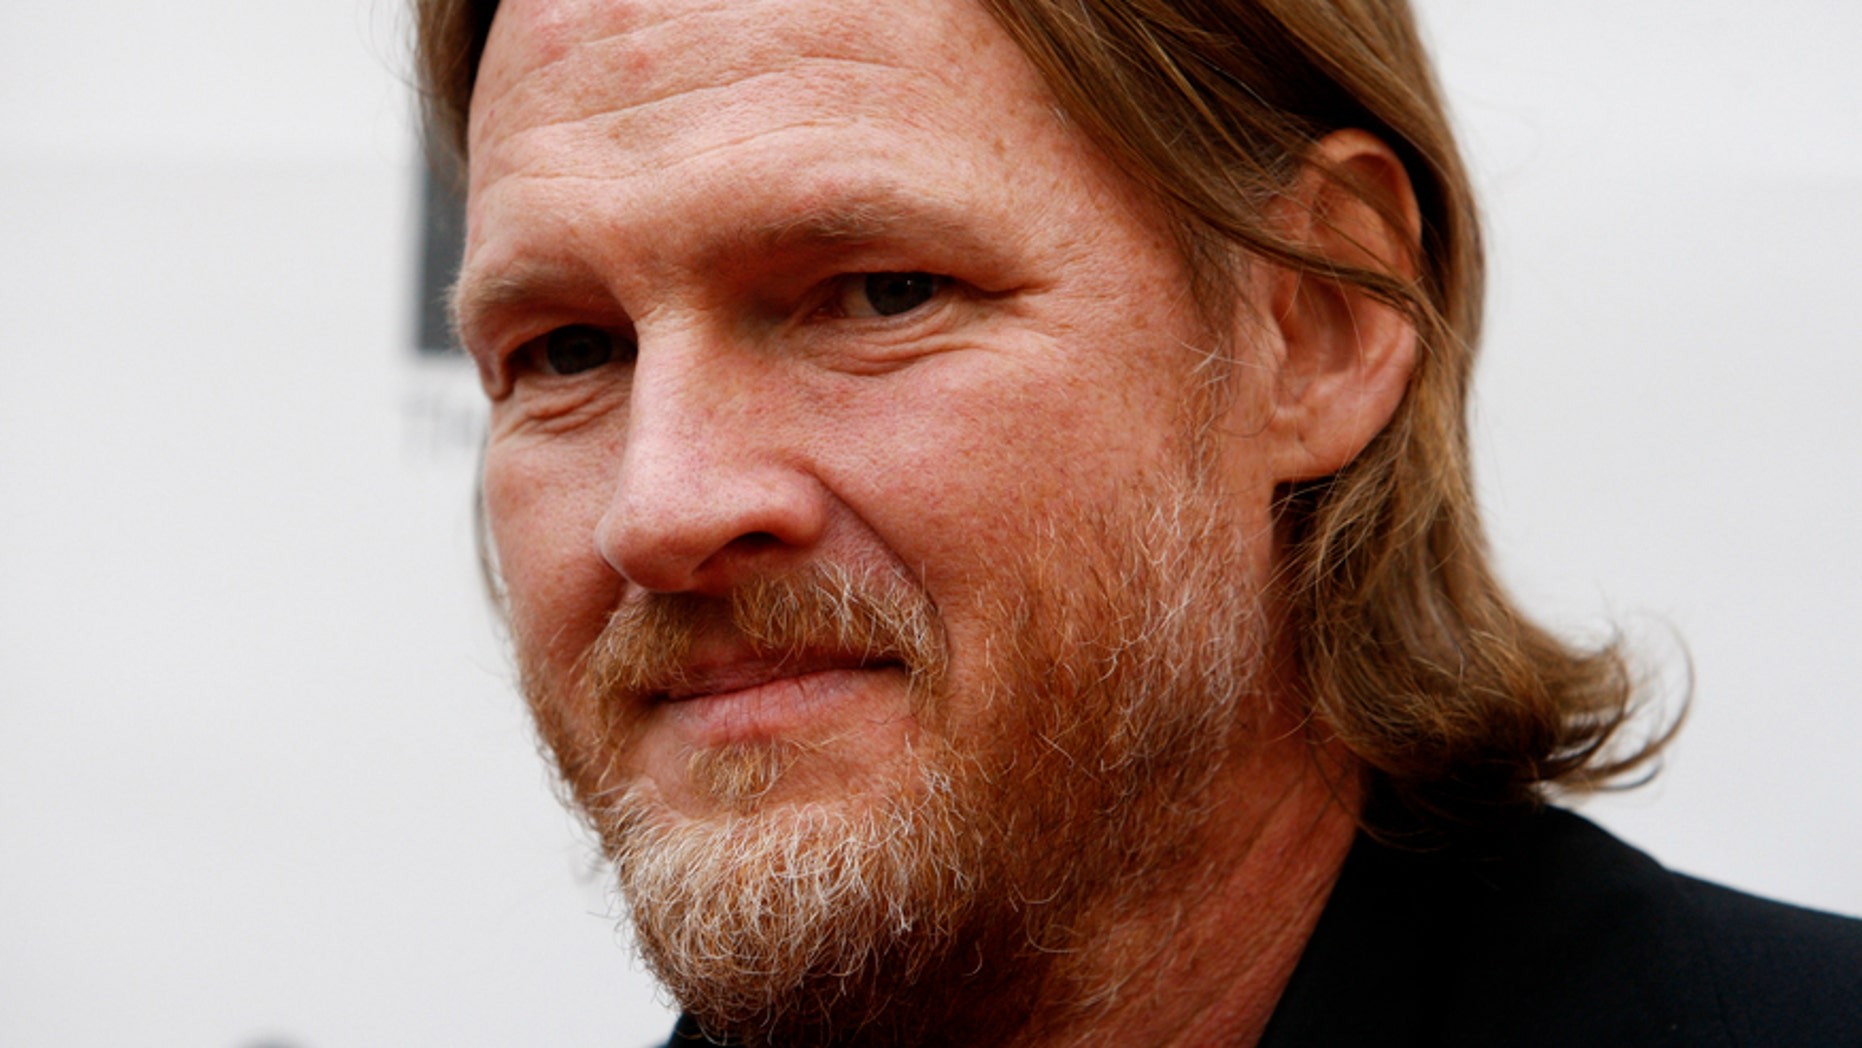 Donal Logue naked (46 photos), Topless, Paparazzi, Twitter, legs 2019